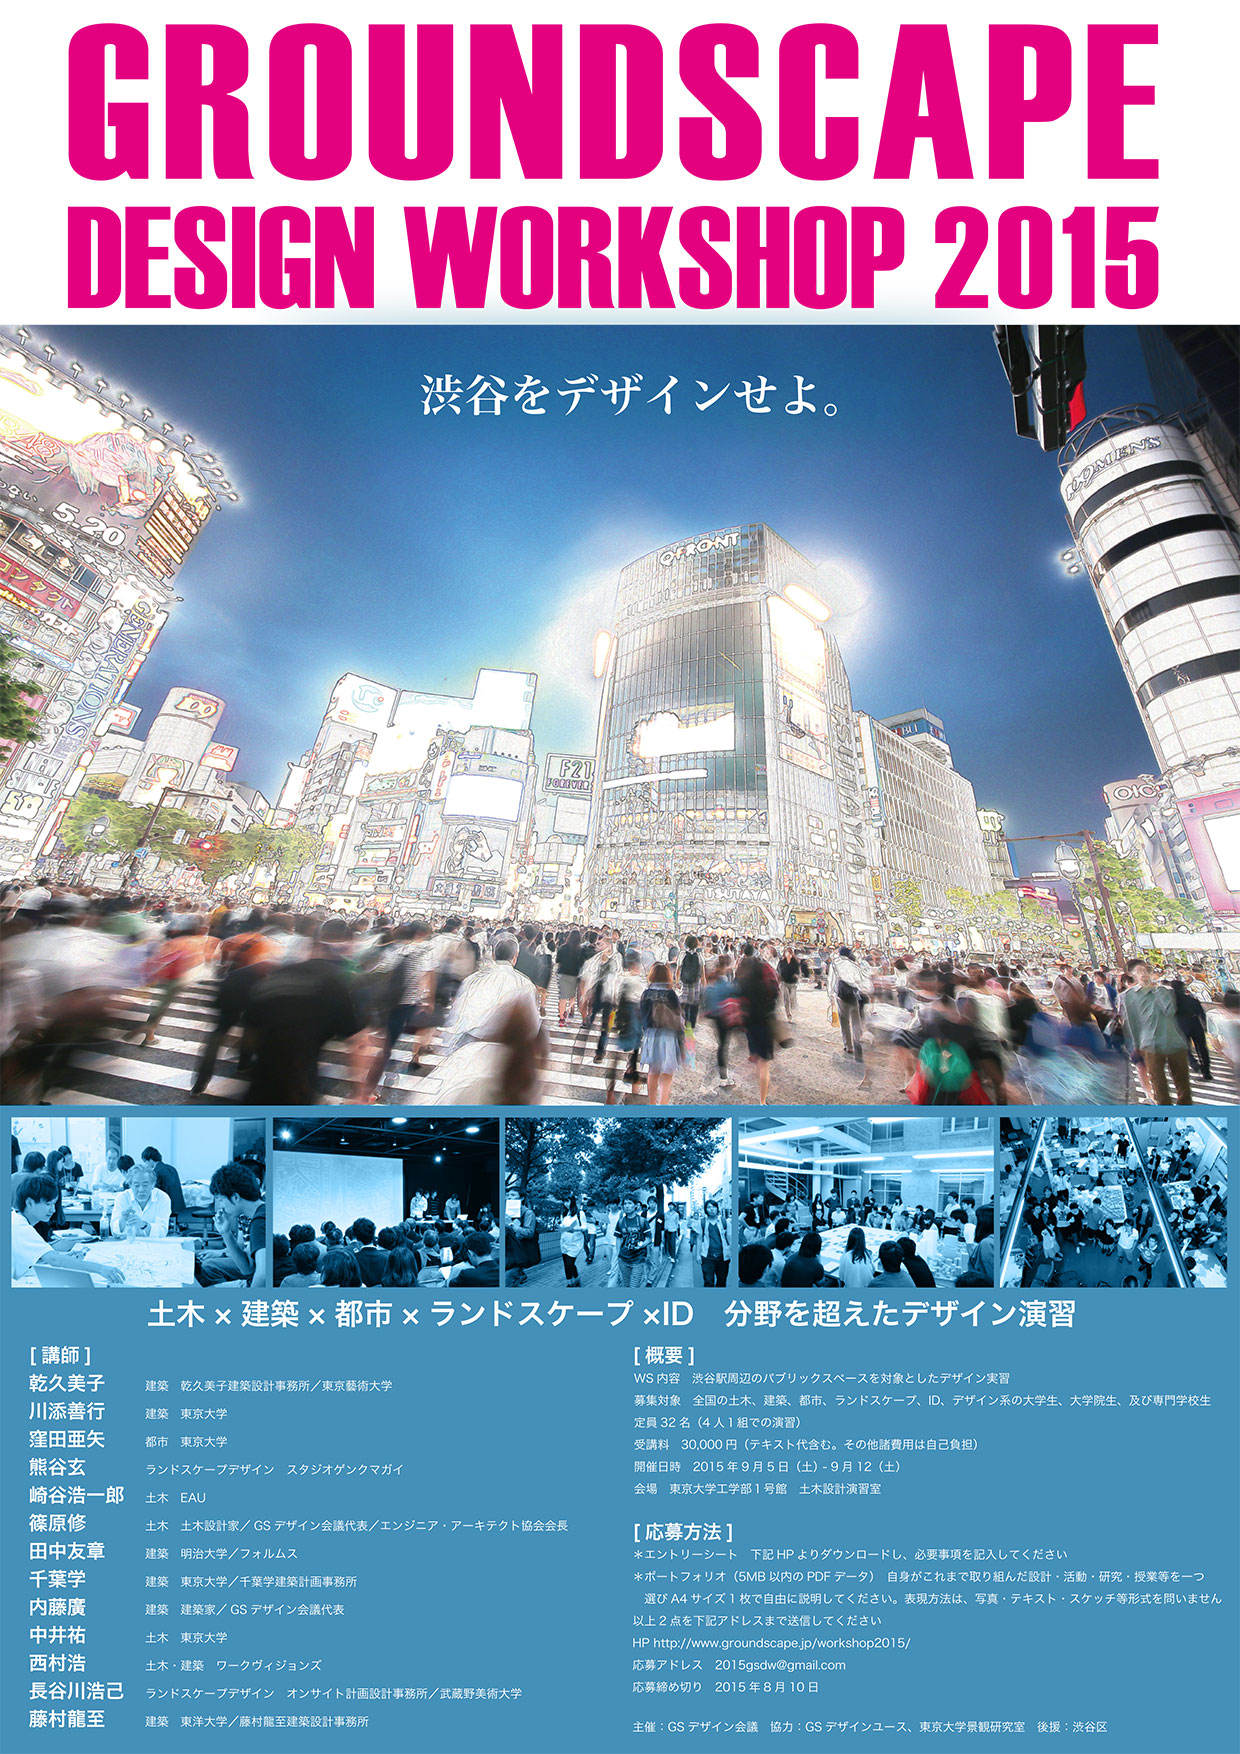 GROUNDSCAPE DESIGN WORKSHOP 2015 flyer